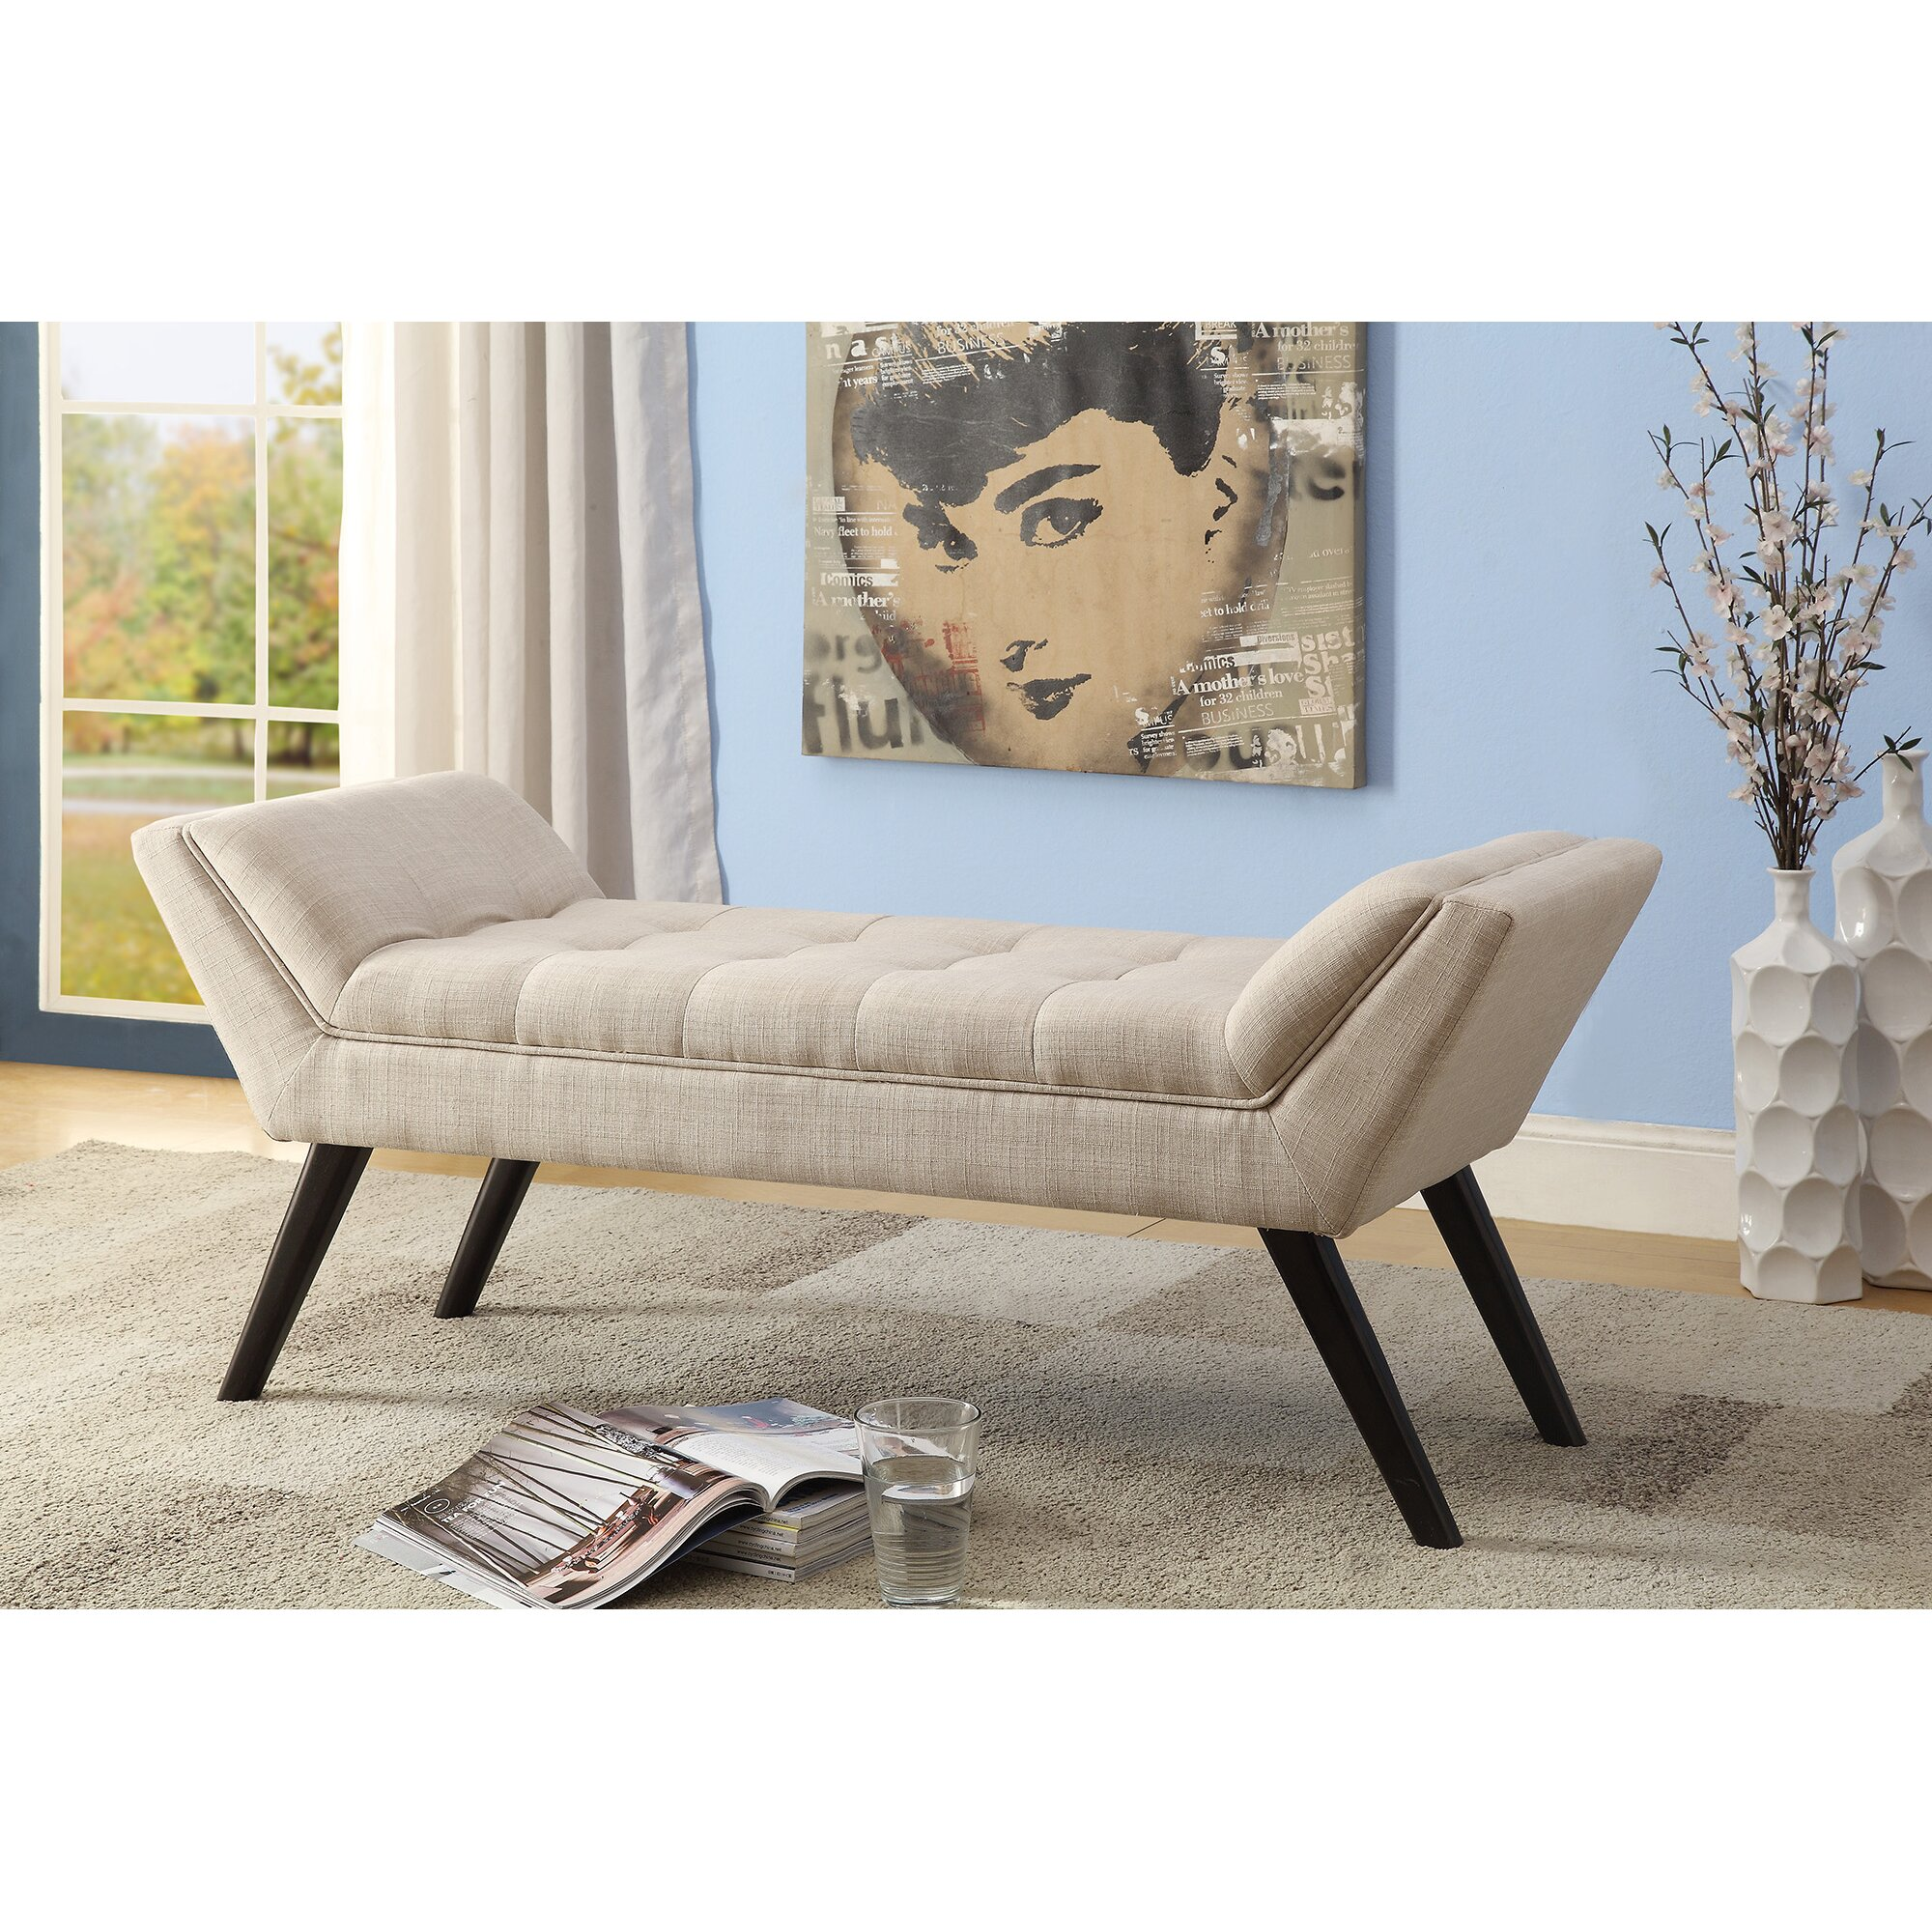 Upholstered Bench Beige: Wholesale Interiors Baxton Studio Upholstered Bedroom